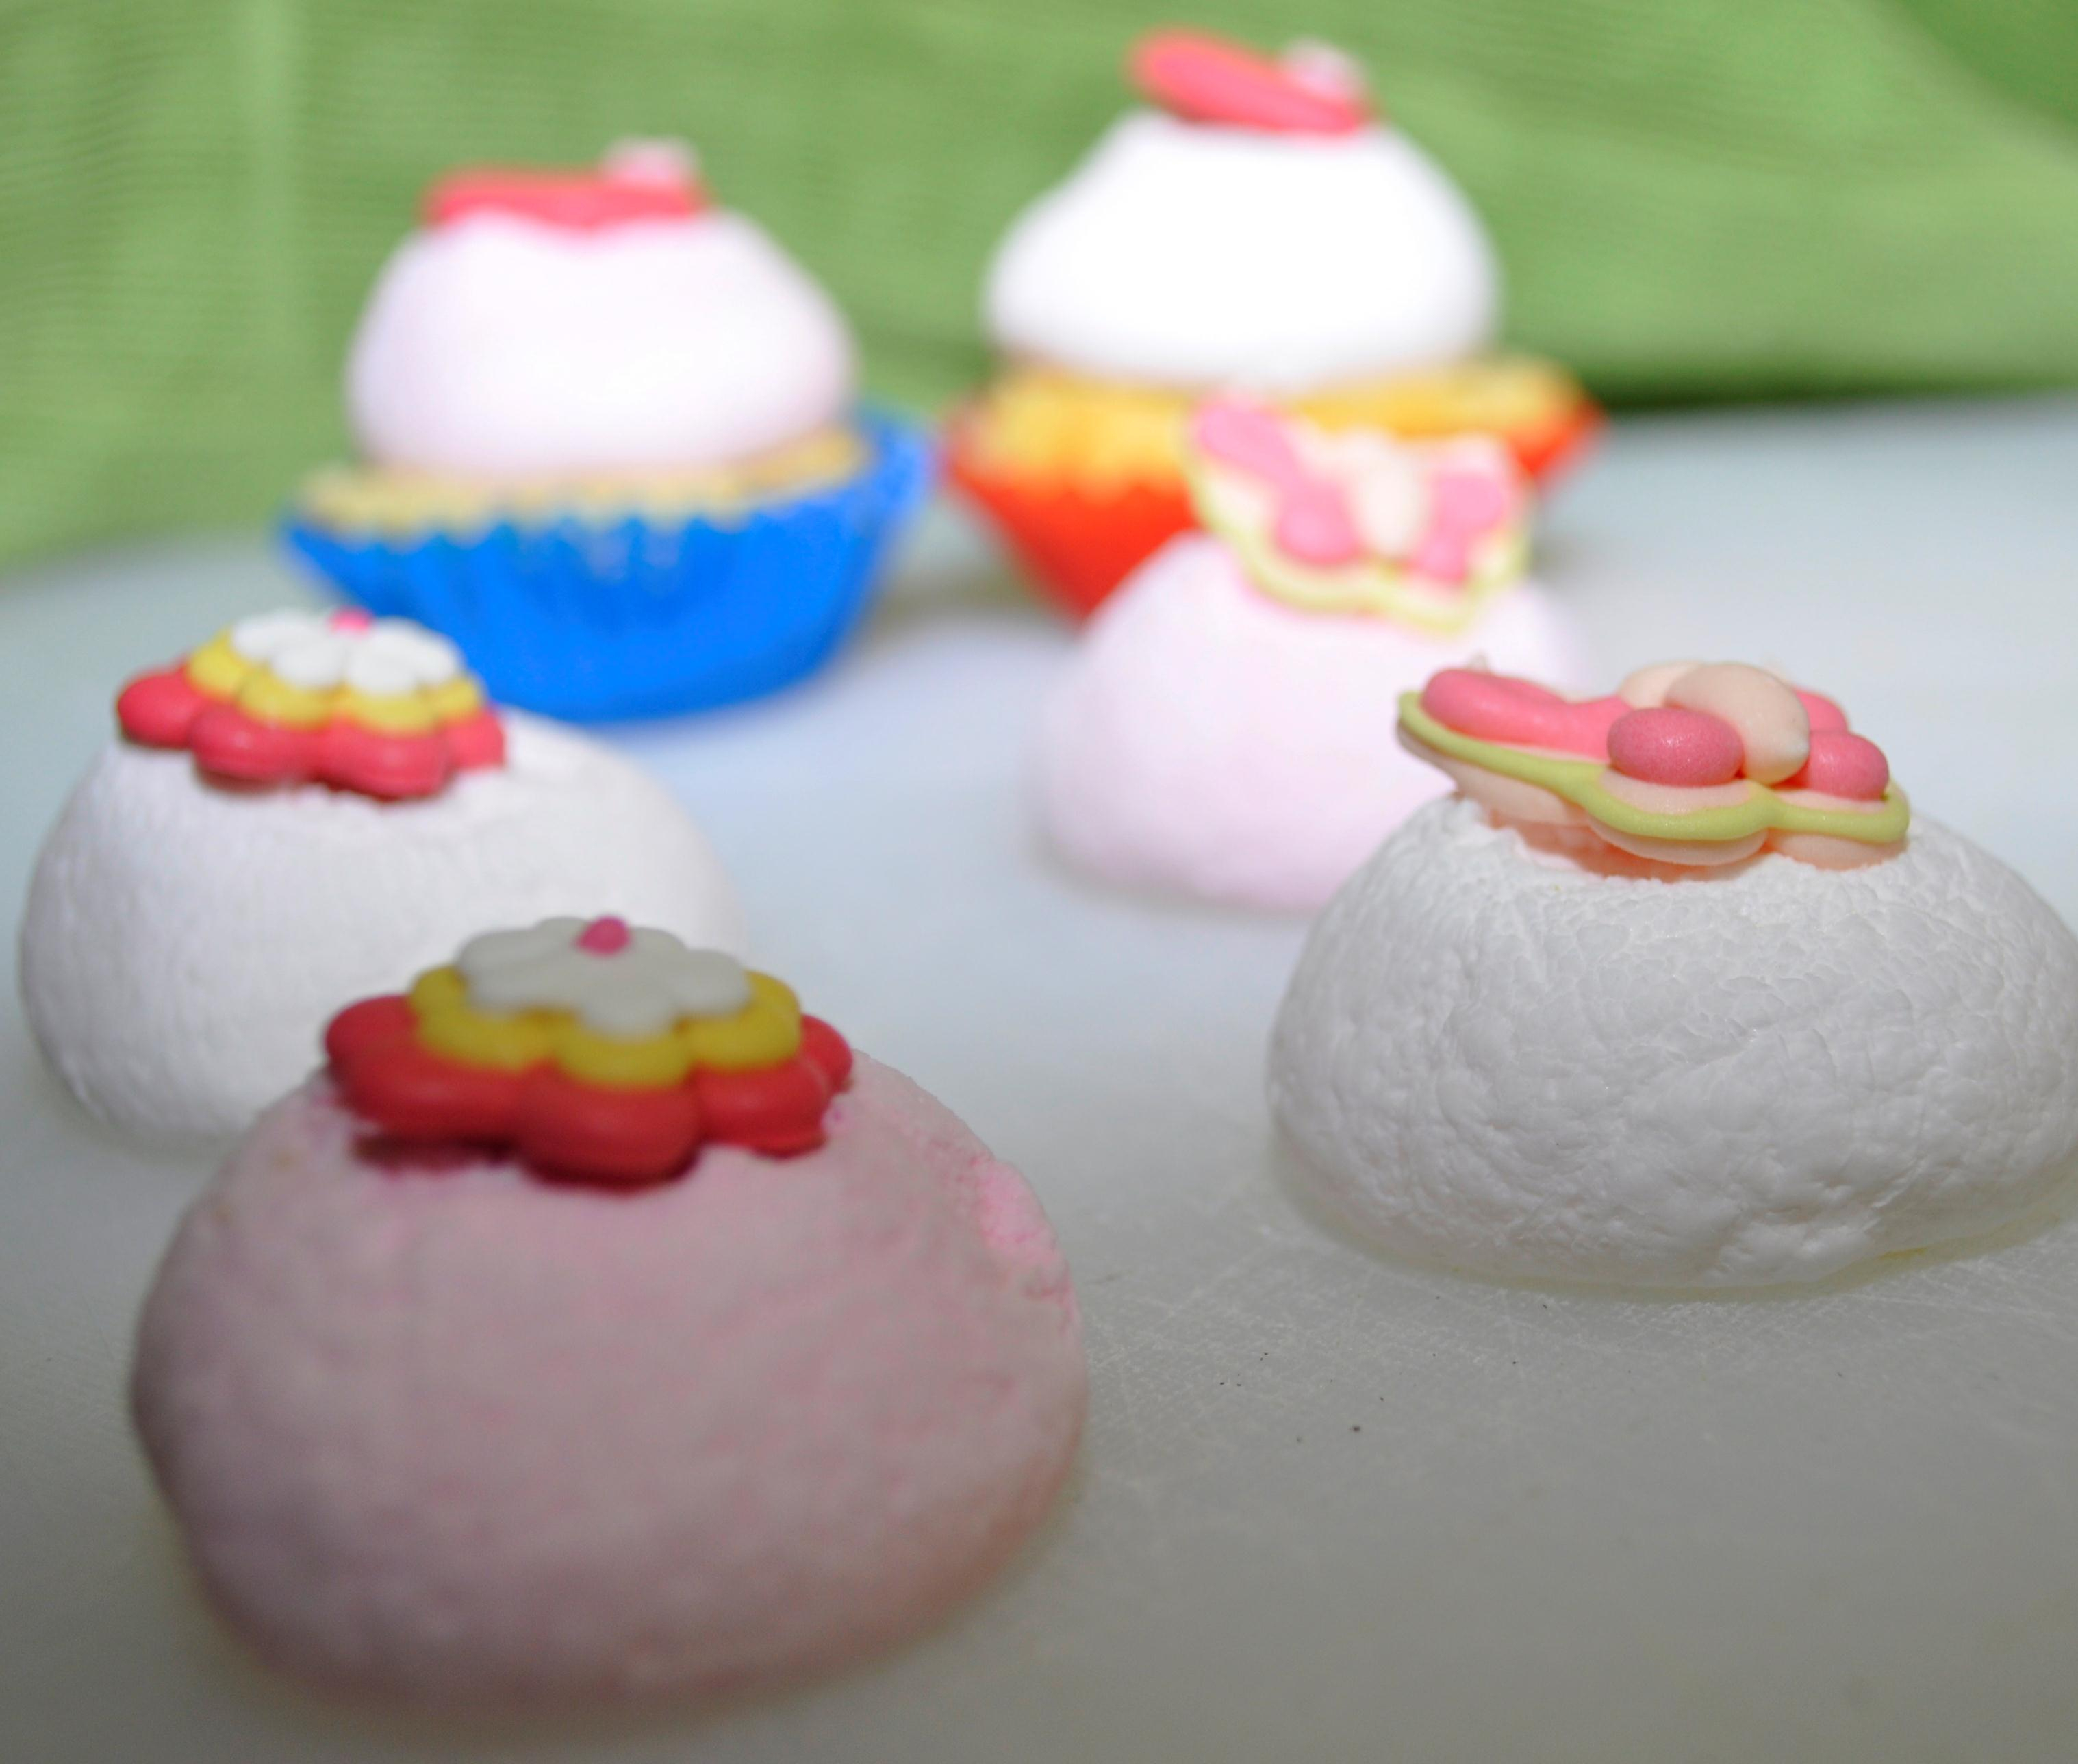 Marshmallow icing for mini cupcakes